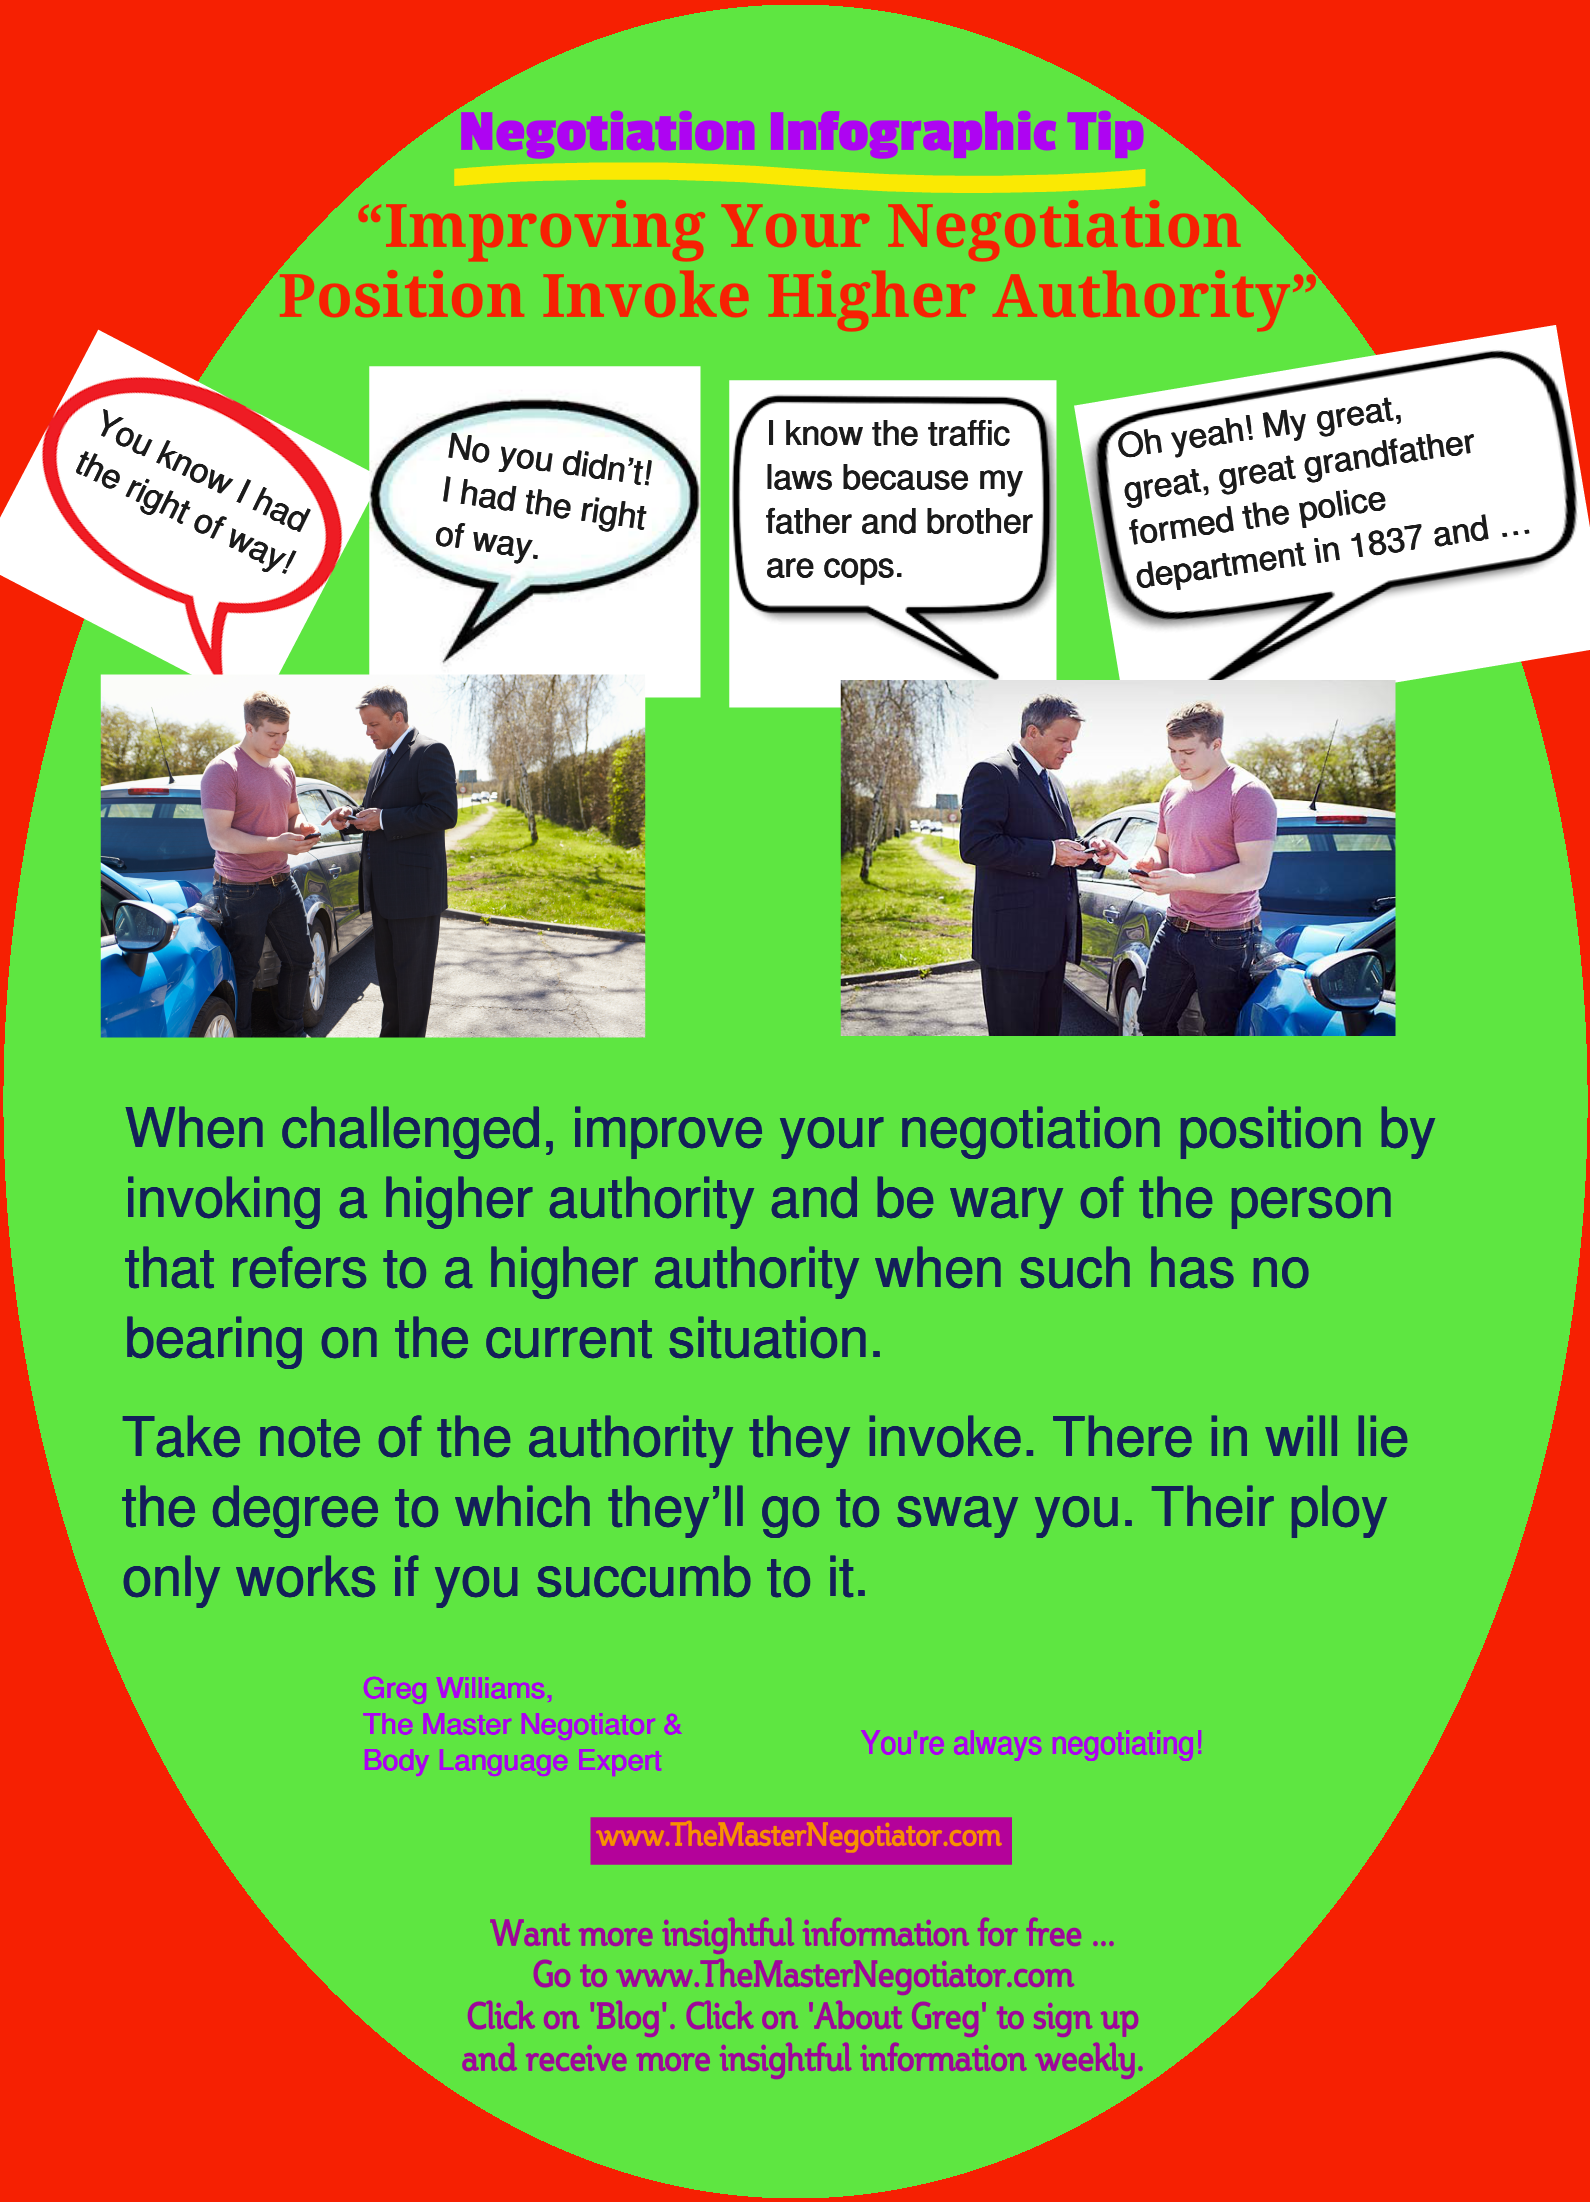 Improving Your Negotiation Position By Invoking Higher Authority